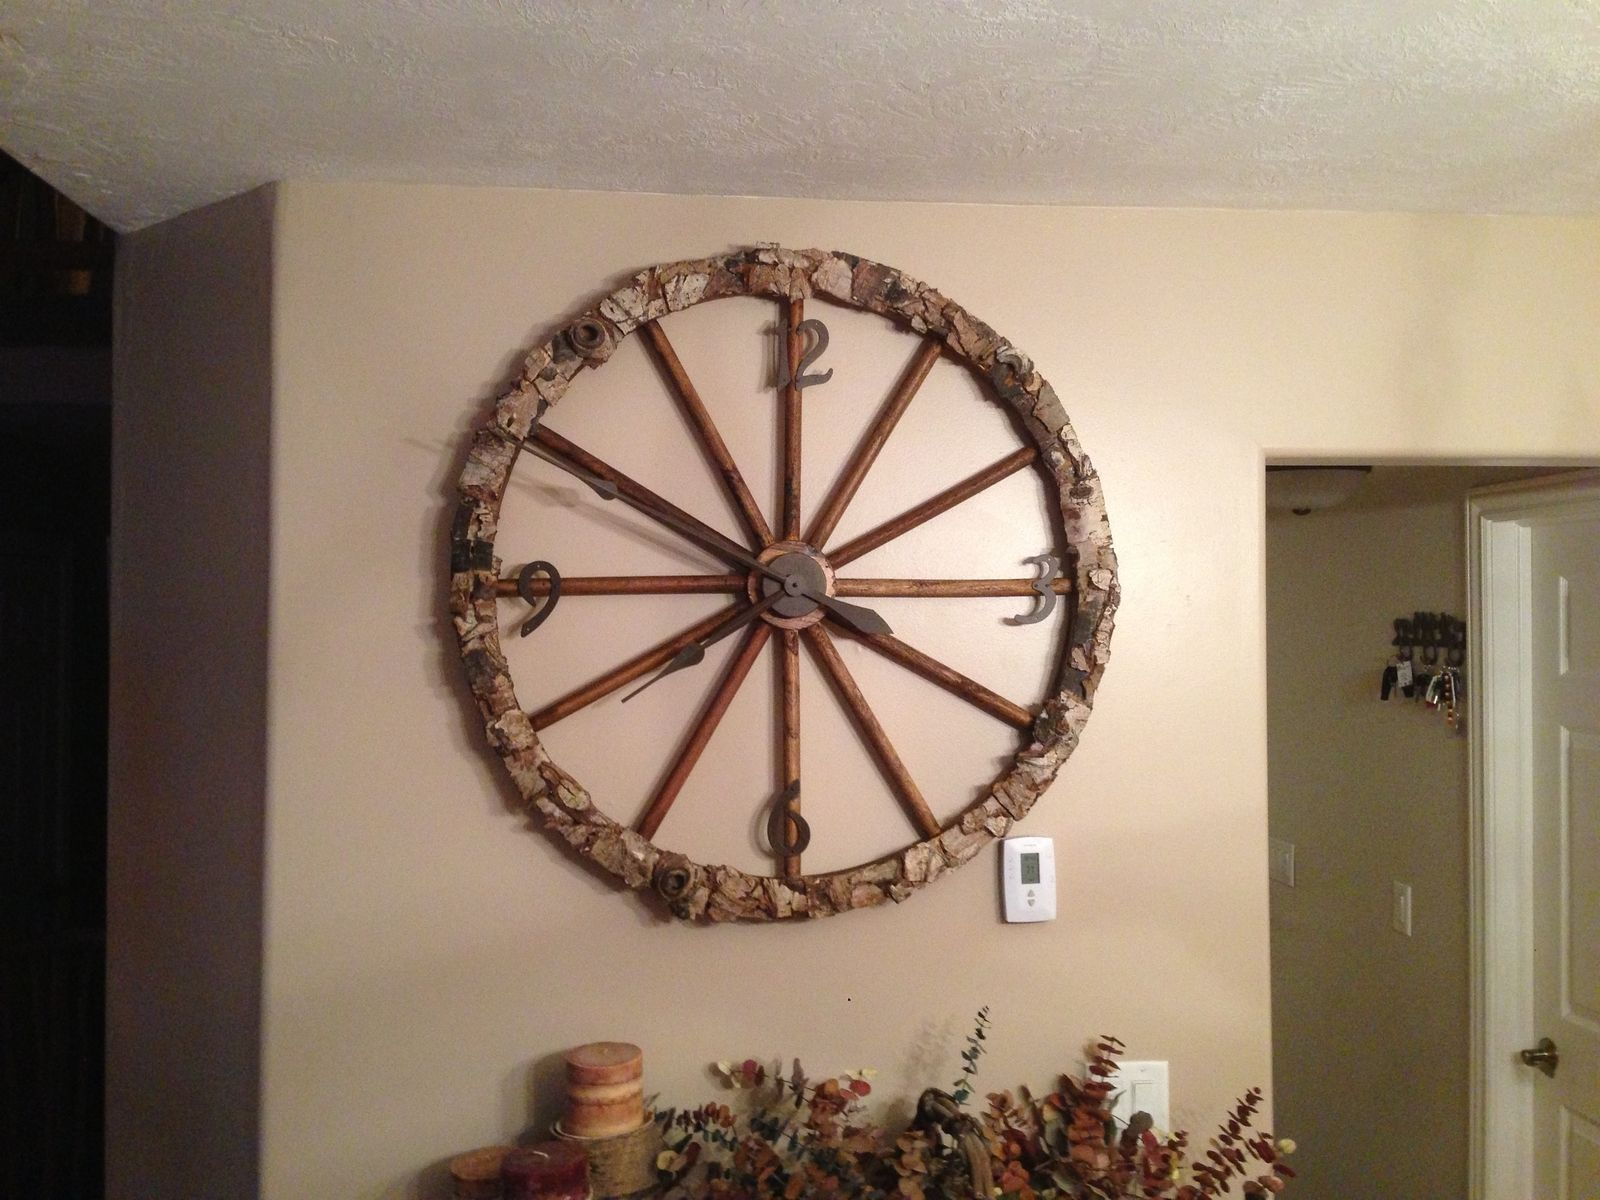 Wagon Wheel Clock By Twisted Tine